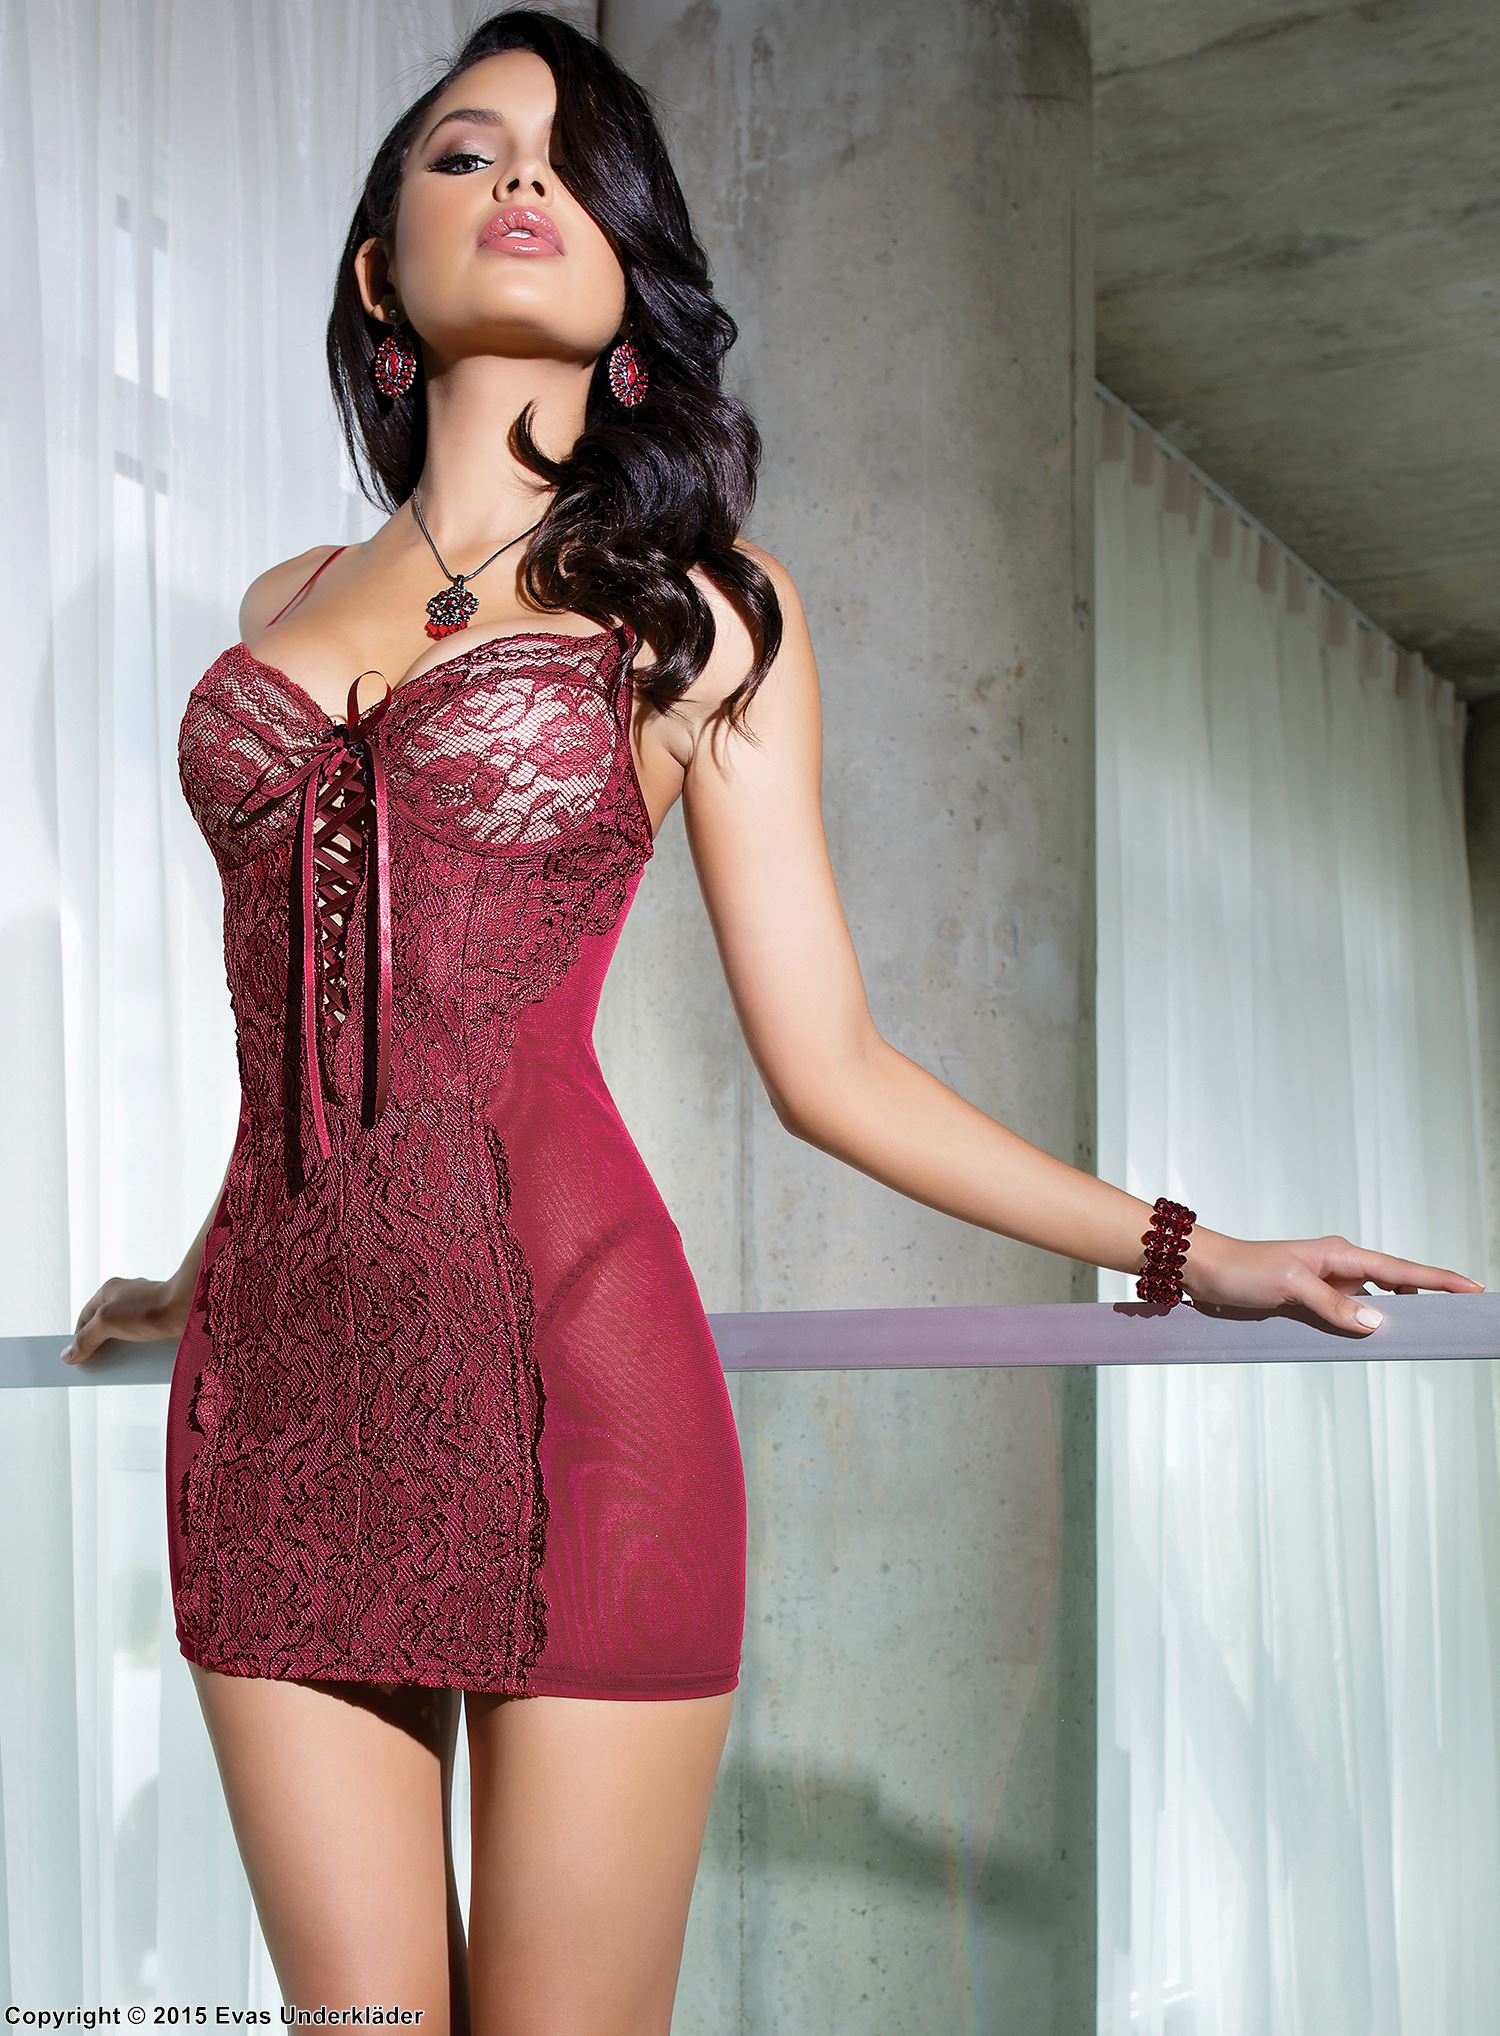 Skin-tight chemise, lacing, lace panel, light shaping effect